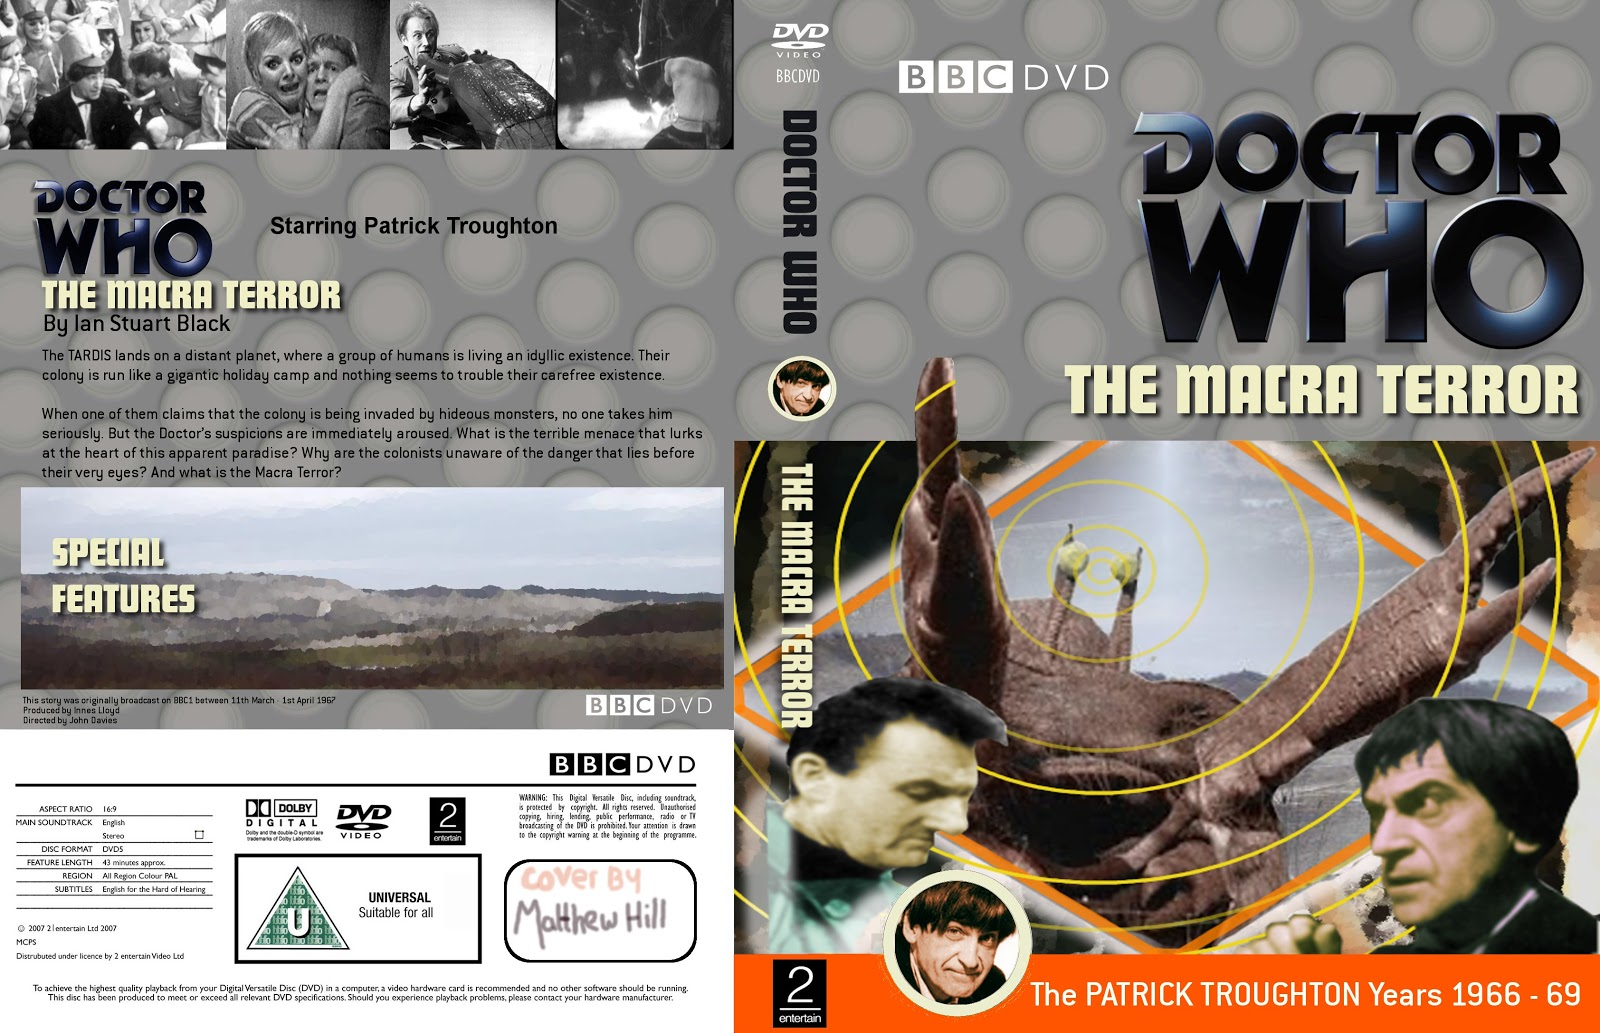 My Doctor Who DVD Covers: Classic Covers